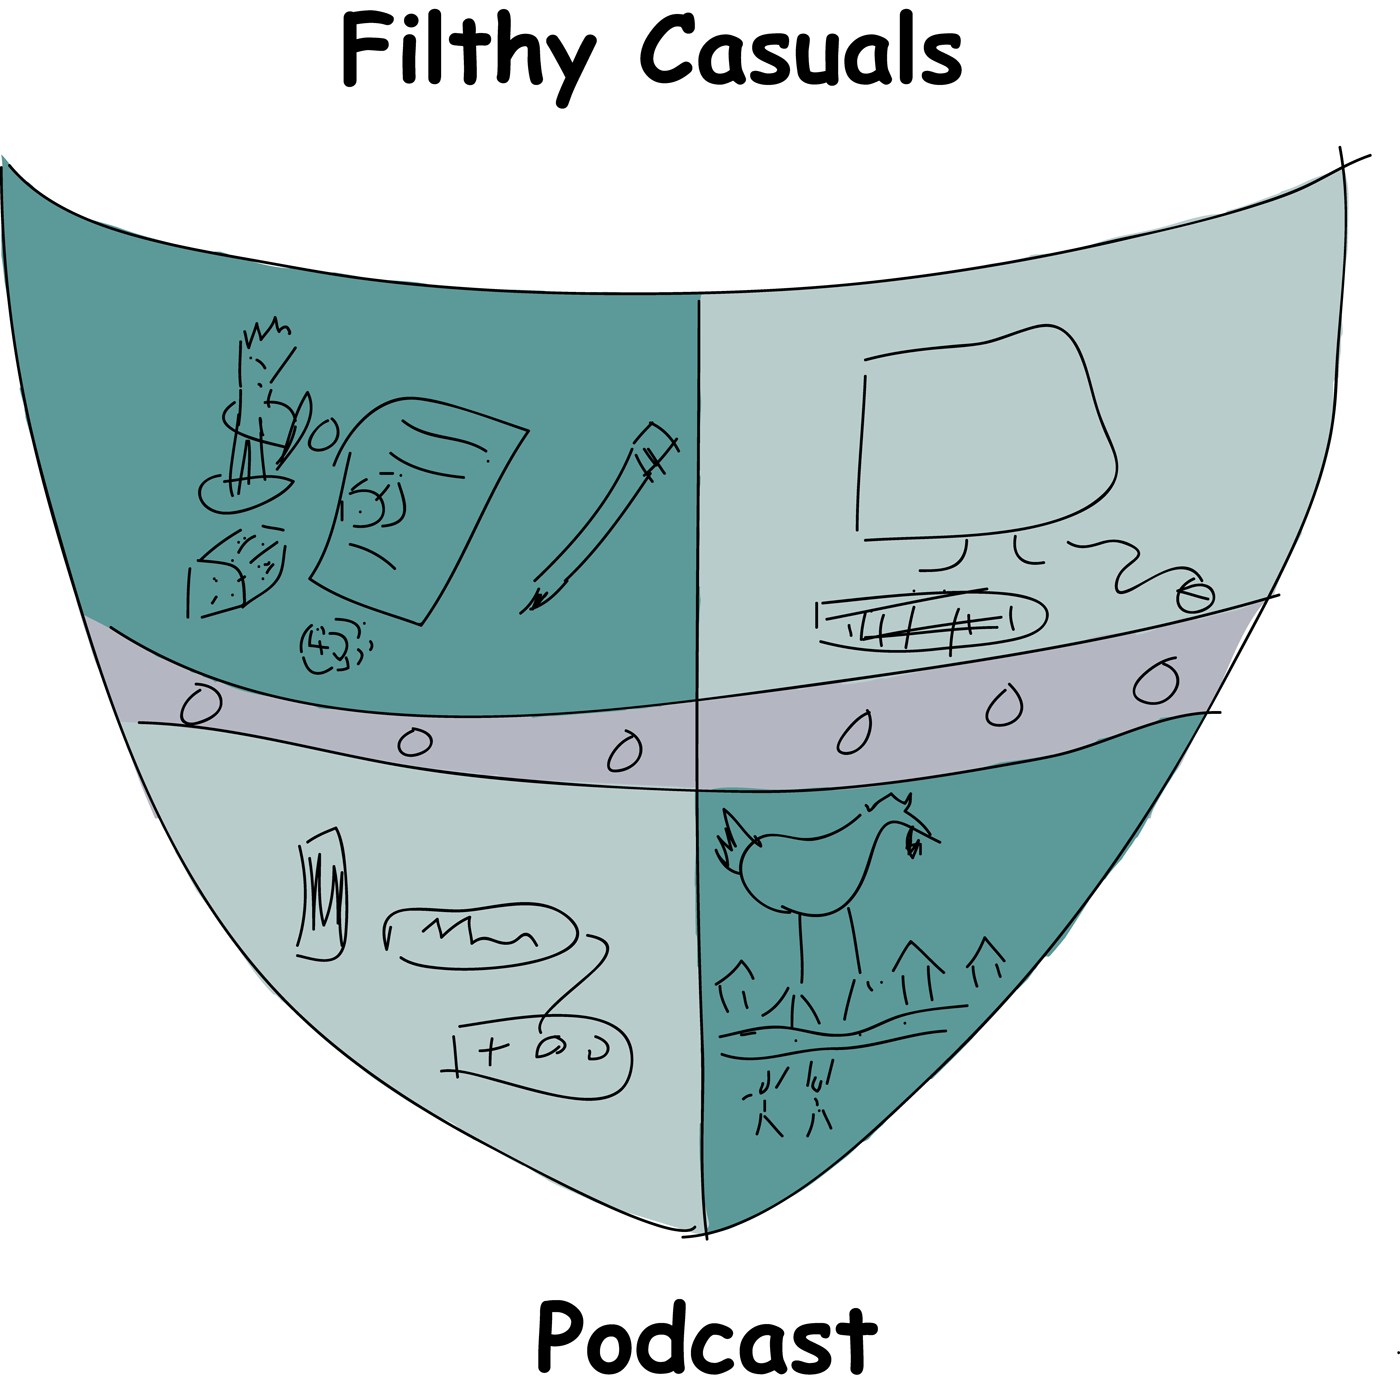 Filthy Casuals Podcast